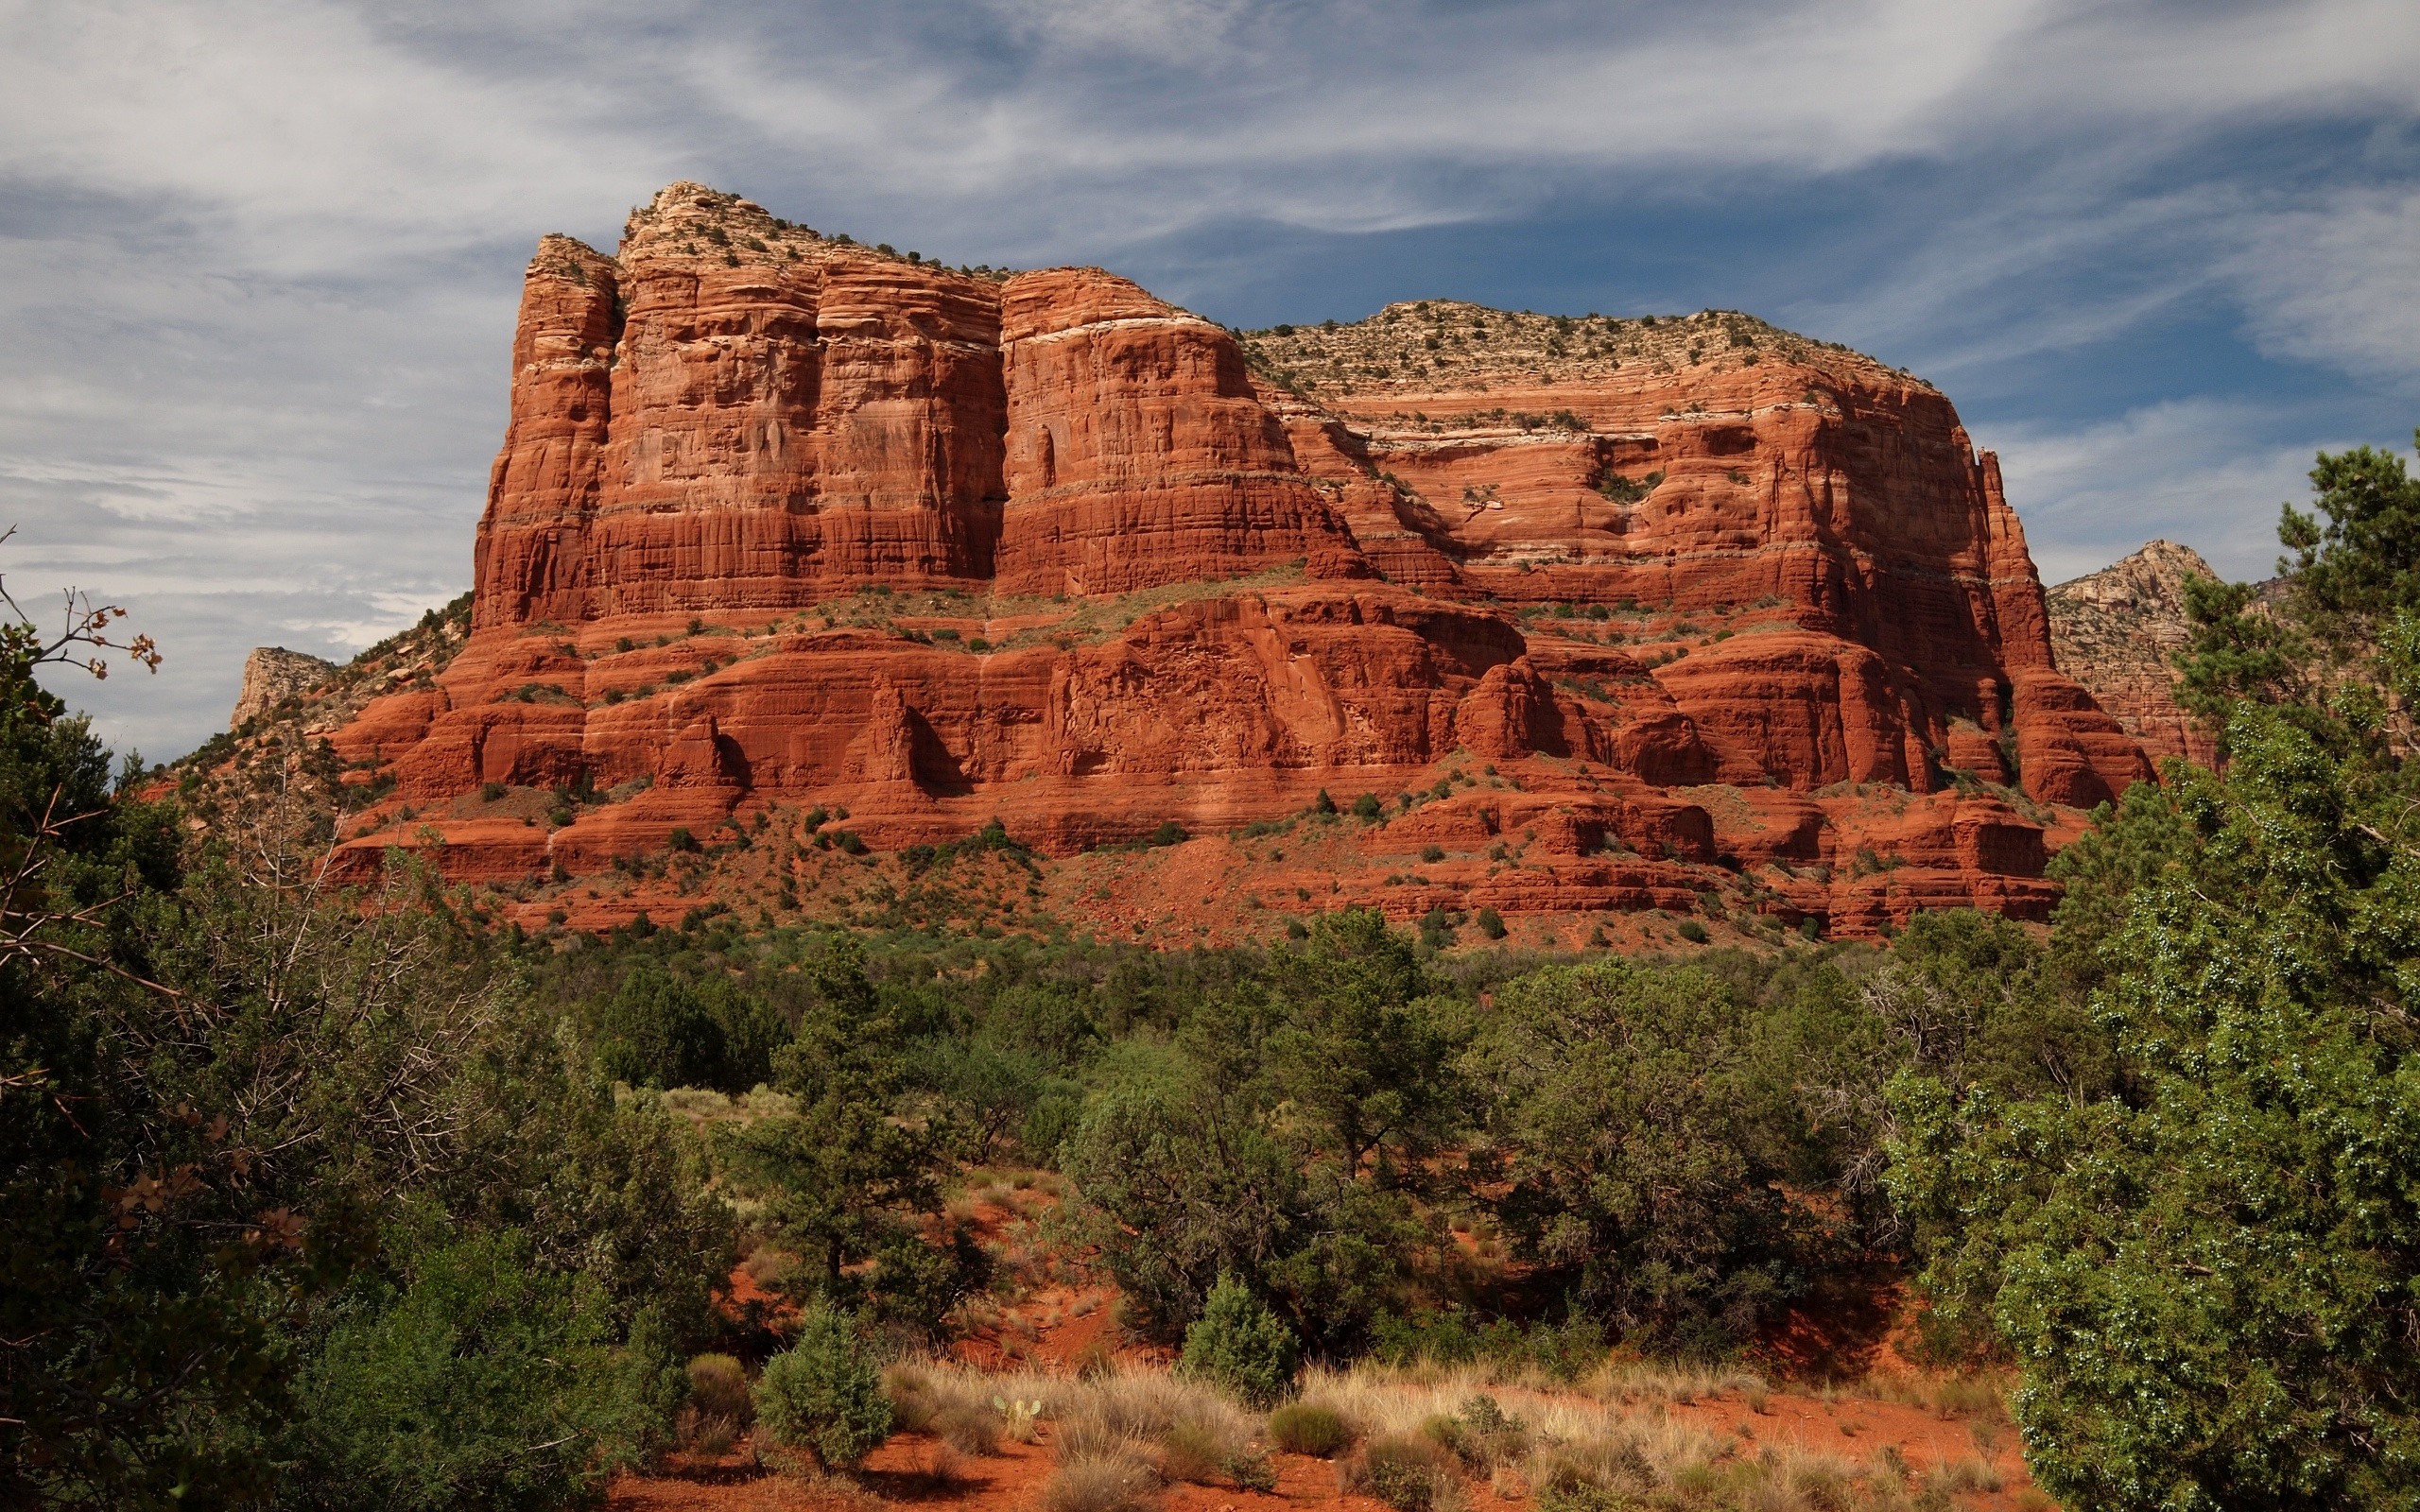 File:Sedona Arizona-27527-4.jpg